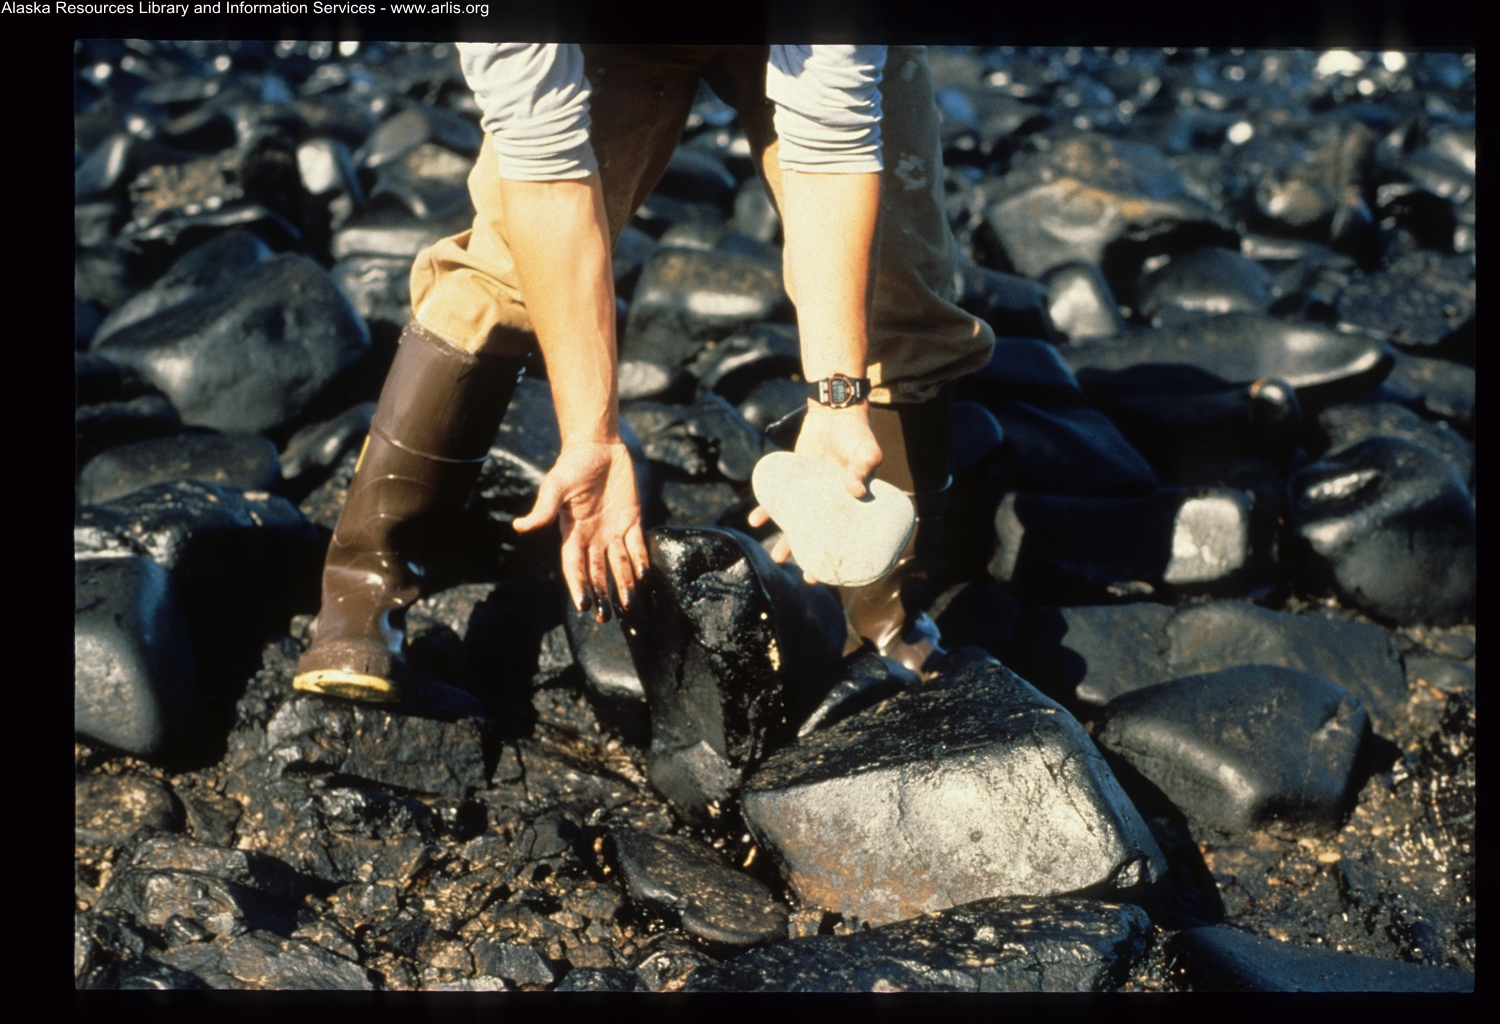 An image of someone with a rock in one hand and oil smeared on the other standing on an oiled rocky shoreline.